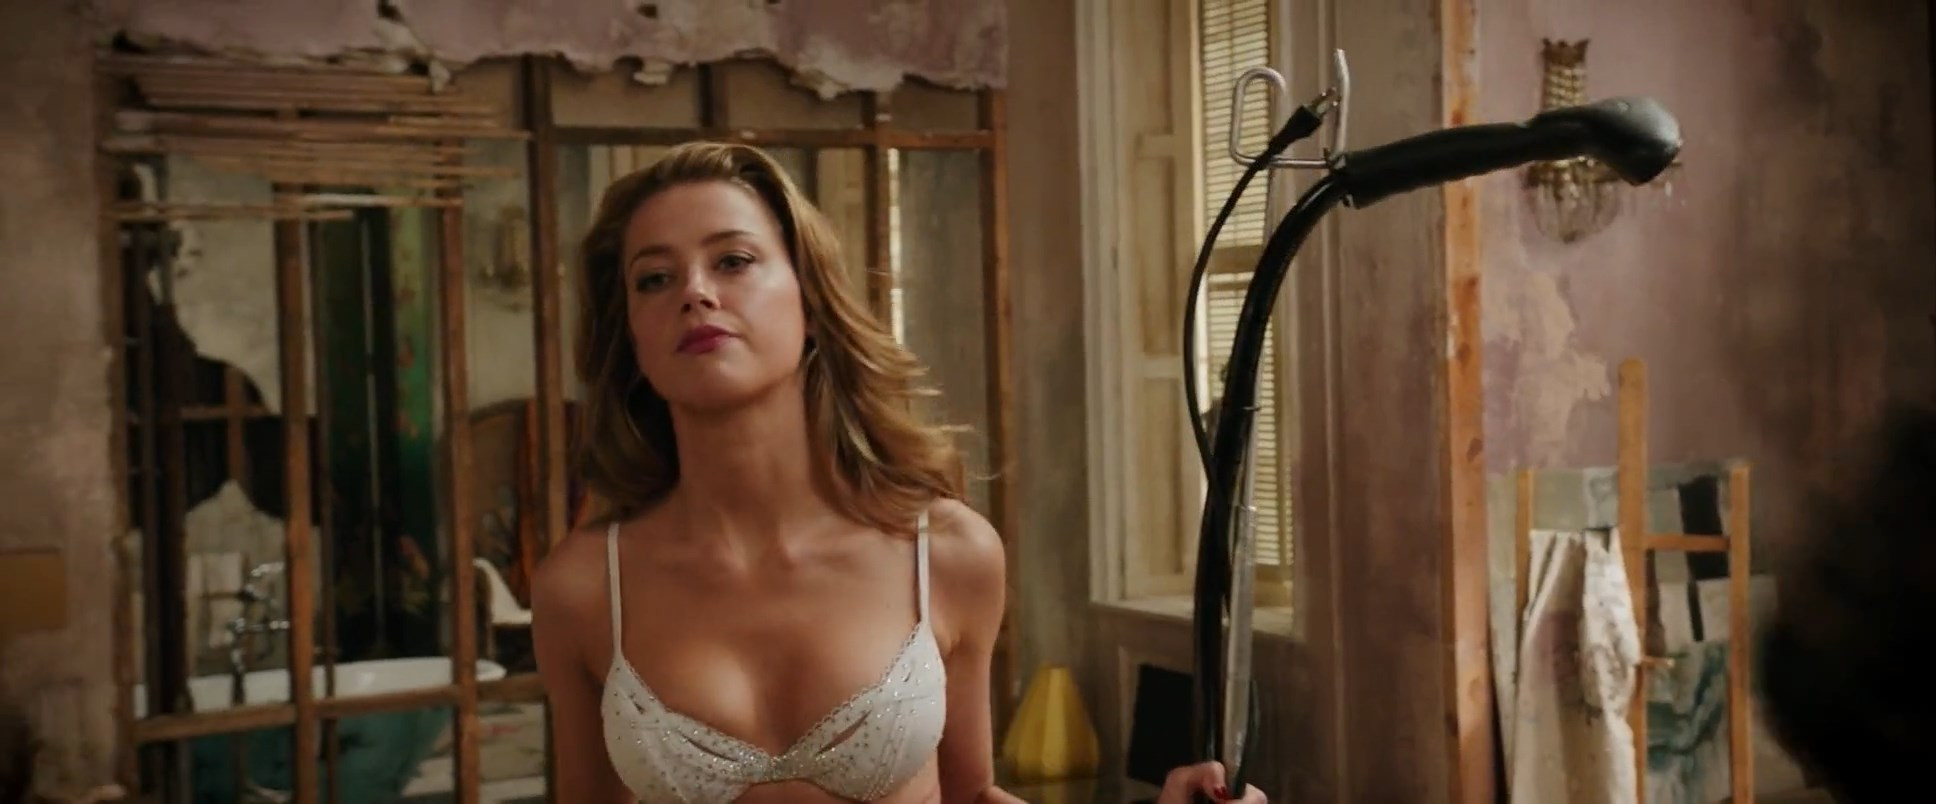 Amber Heard Nude and Sexy TheFappening.nu 1602a8c68e976b9463.jpg